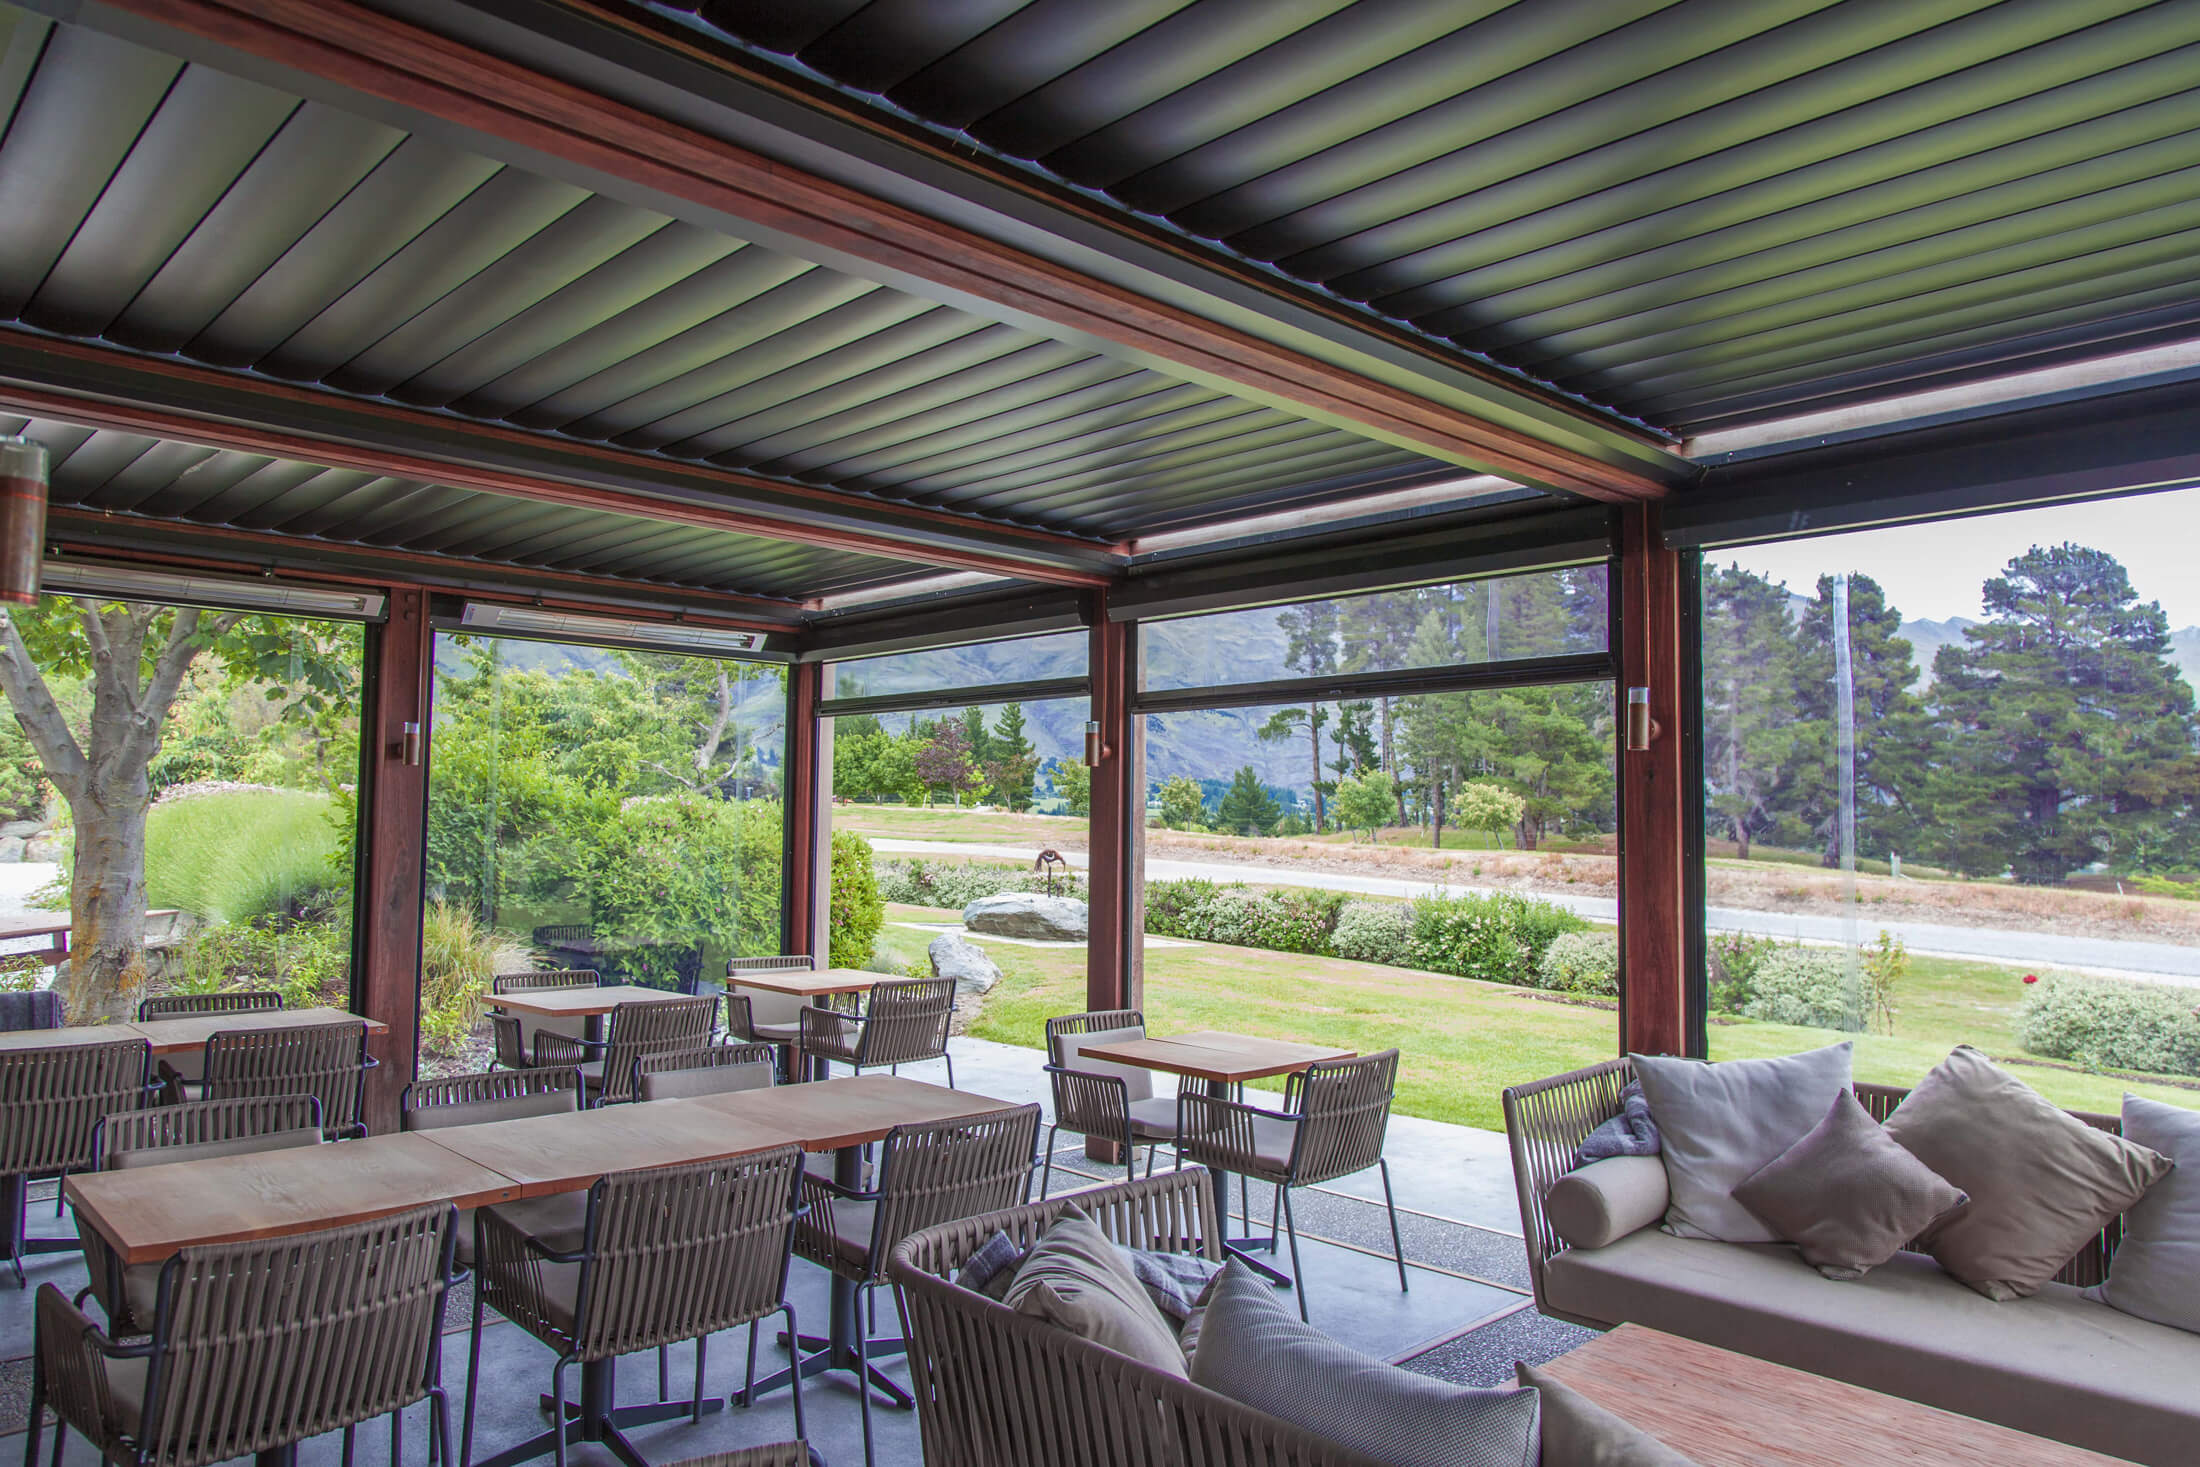 PVC blinds and outdoor heaters